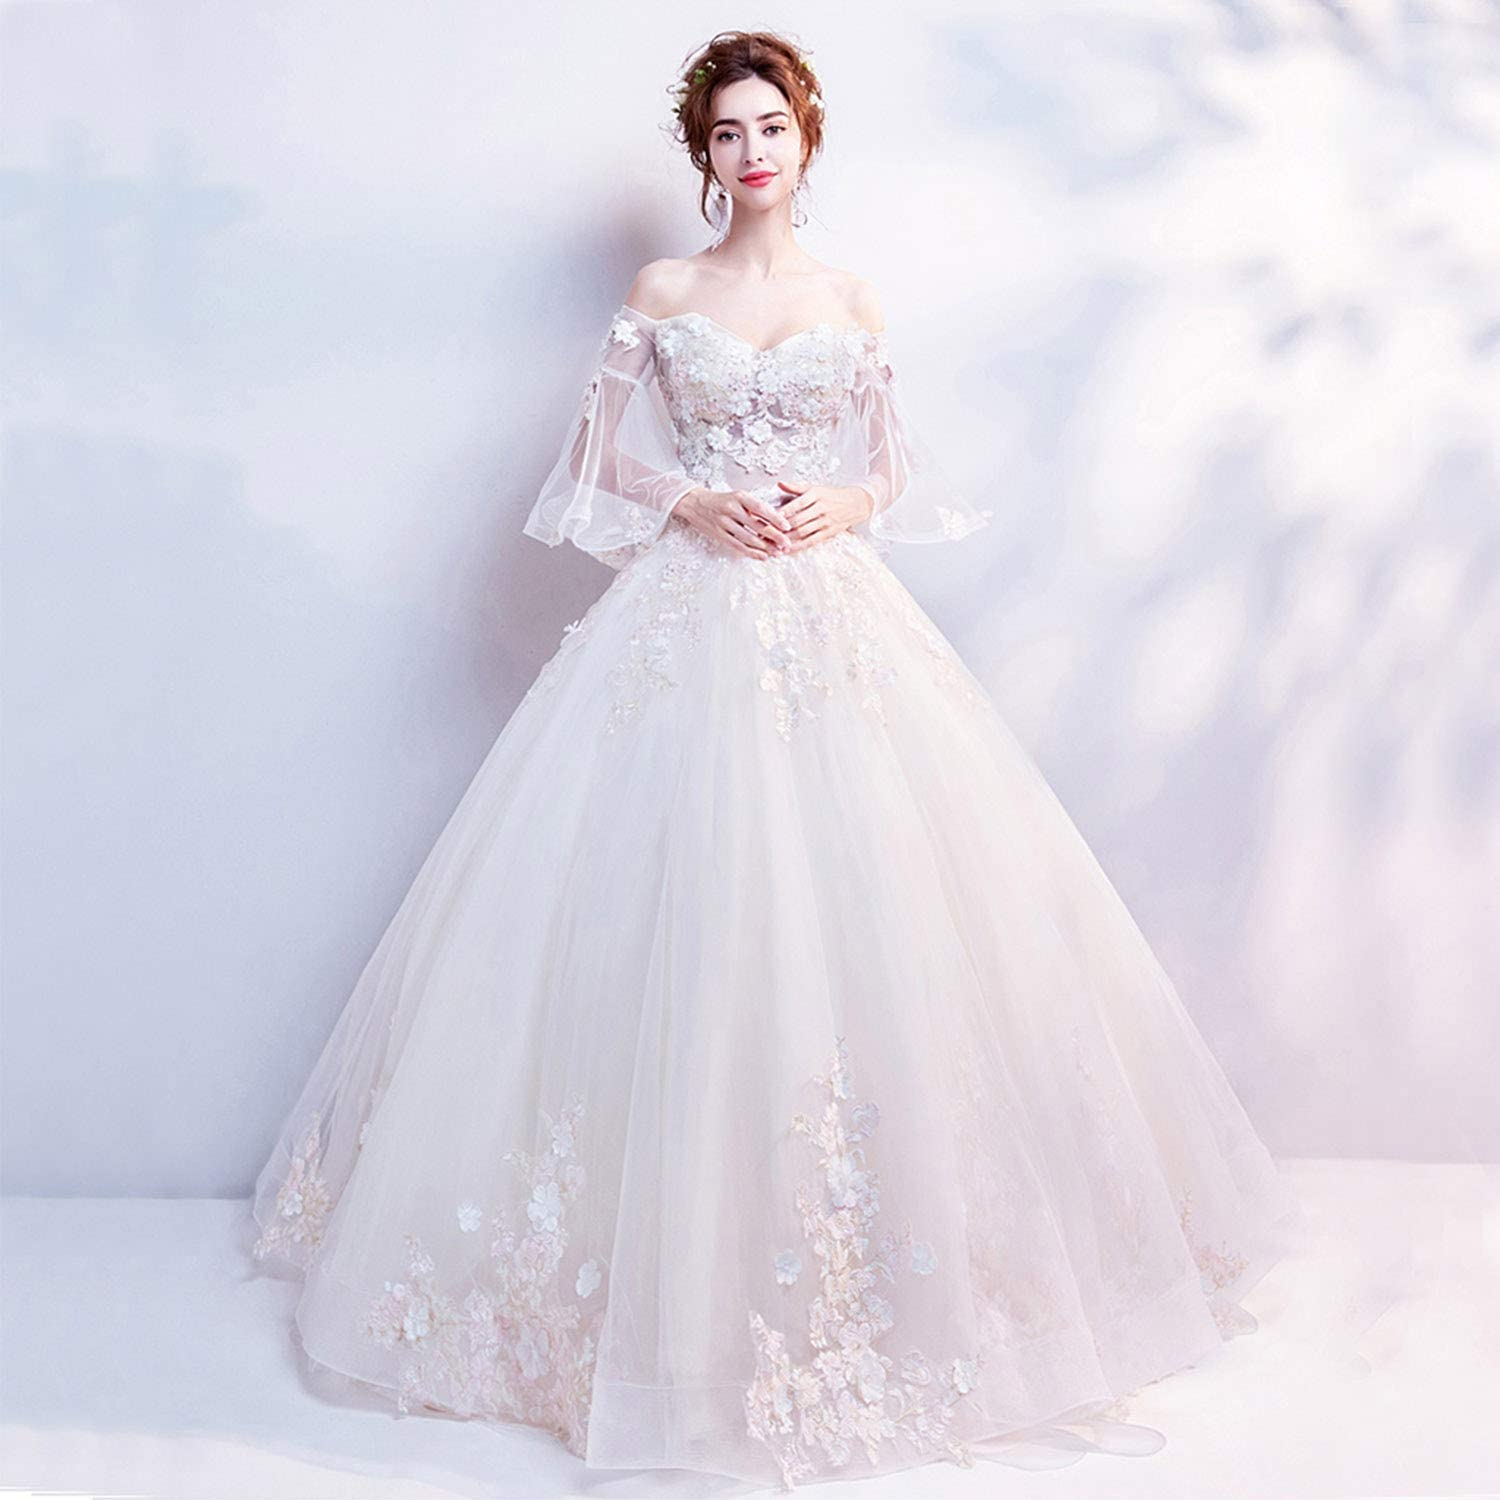 Fashion Women's Bride Wedding Dresses Fancy VNeck Tulle Floor Length Horn Sleeves Cremony Evening Prom Dresses with Floral Lace Appliques Beadings